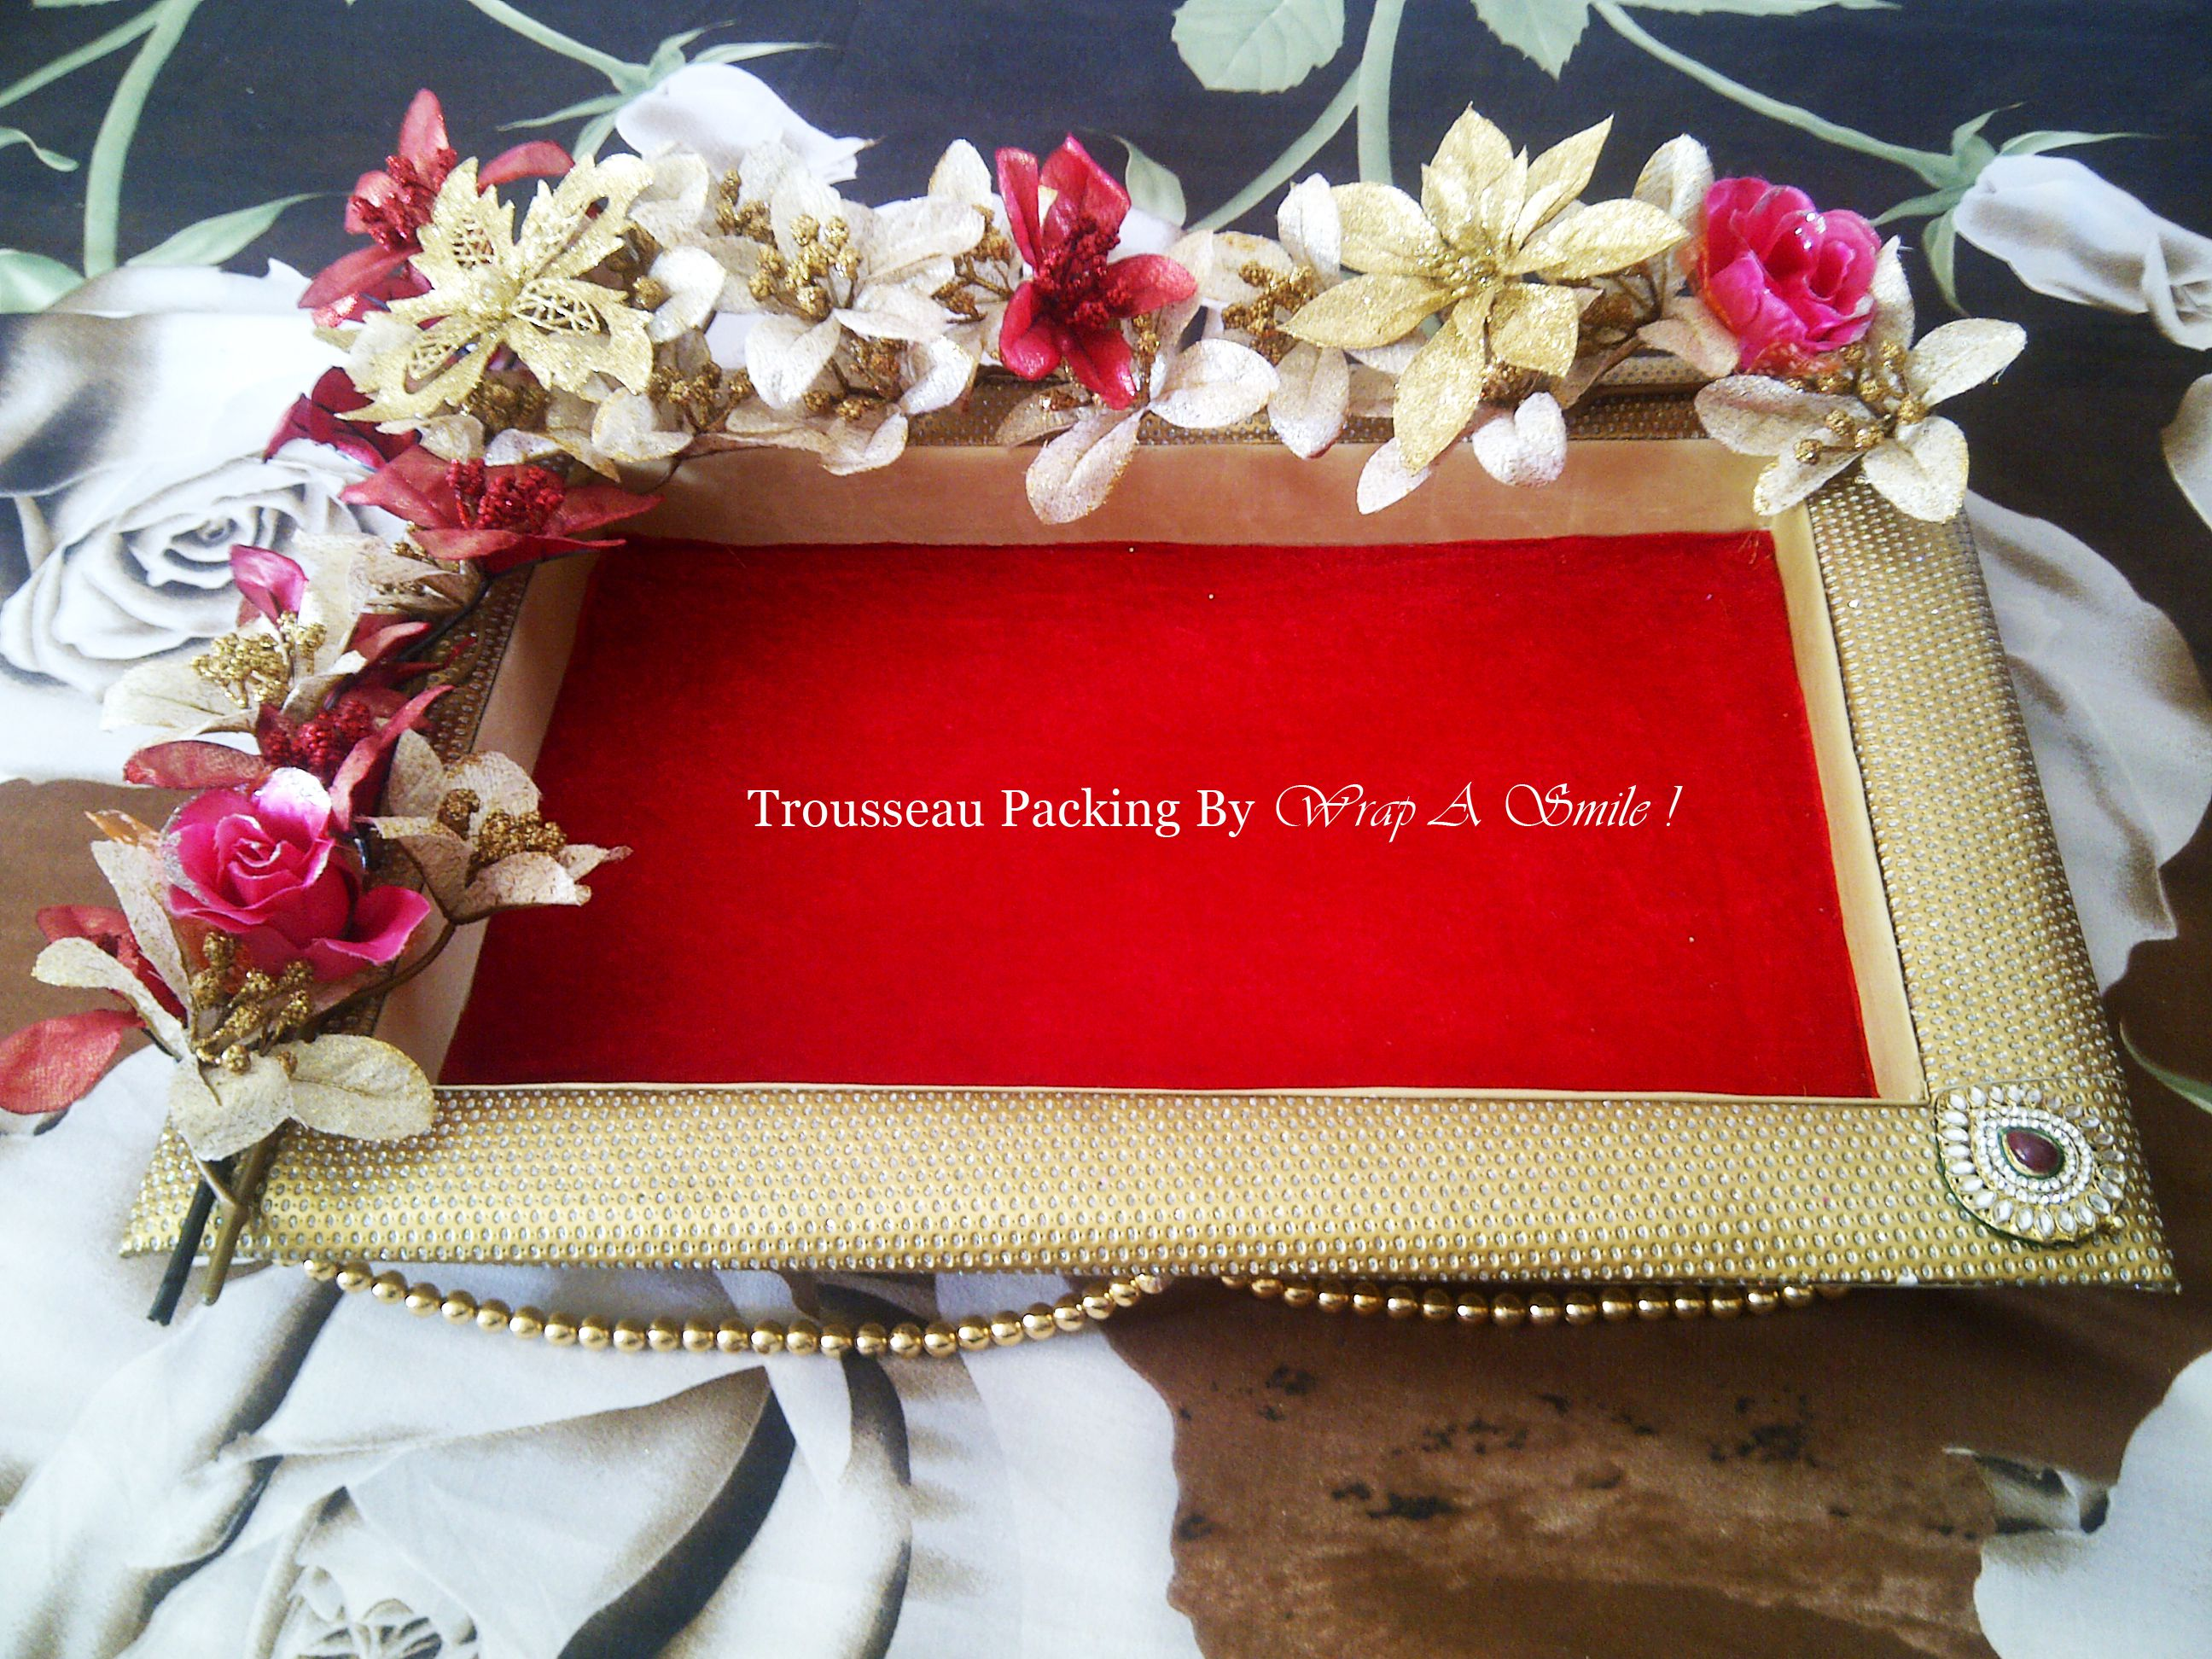 Packing Ideas For Wedding Gifts: Customized Trousseau Packing At Wrap A Smile